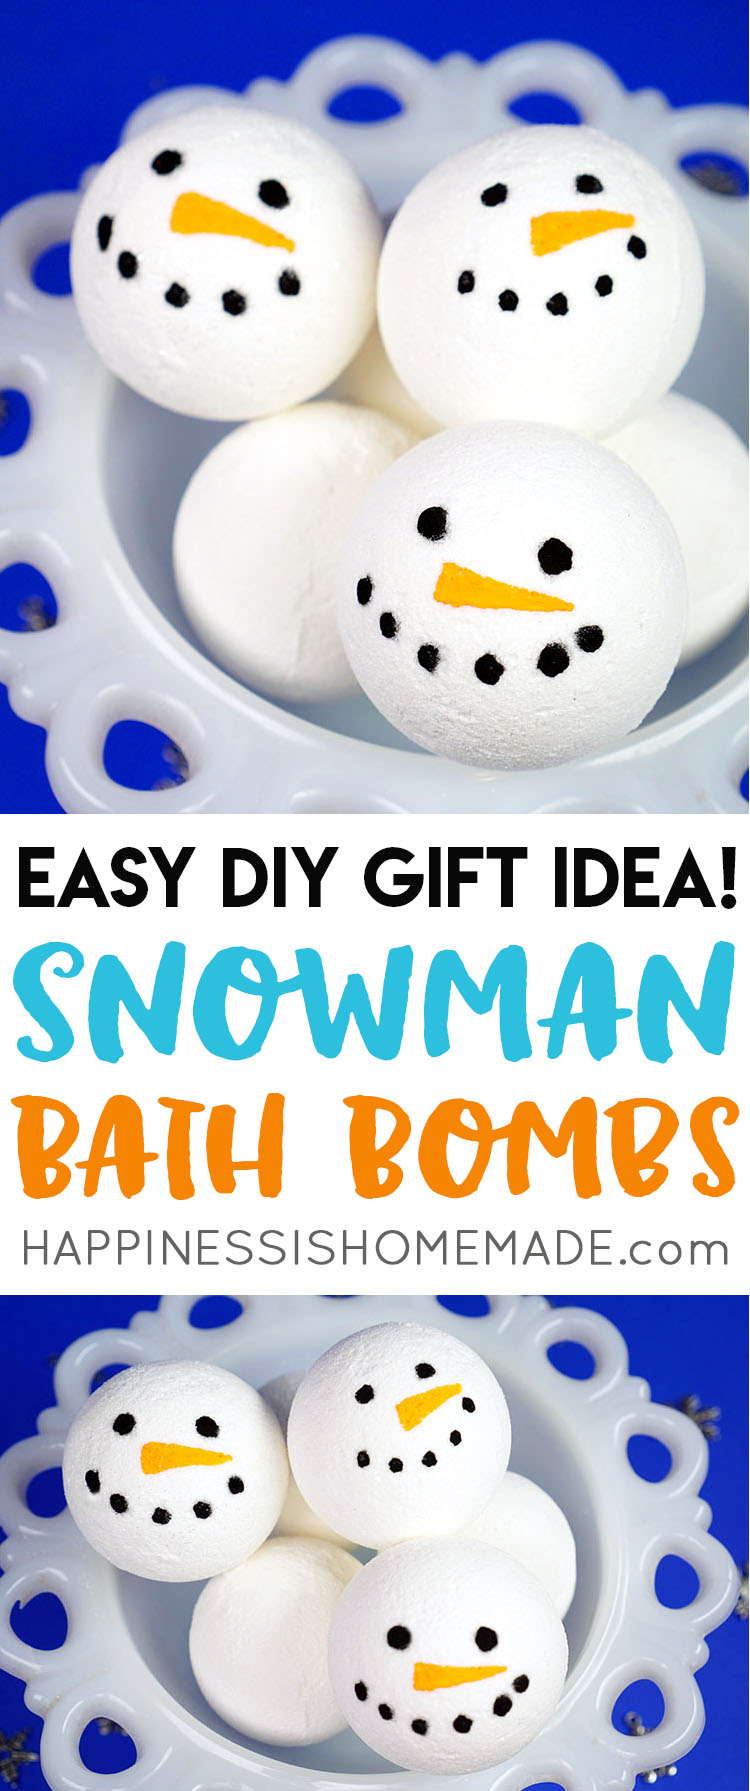 Want to learn how to make bath bombs? This simple DIY snowman bath bomb recipe is perfect for beginners and a great idea for holiday gift giving!